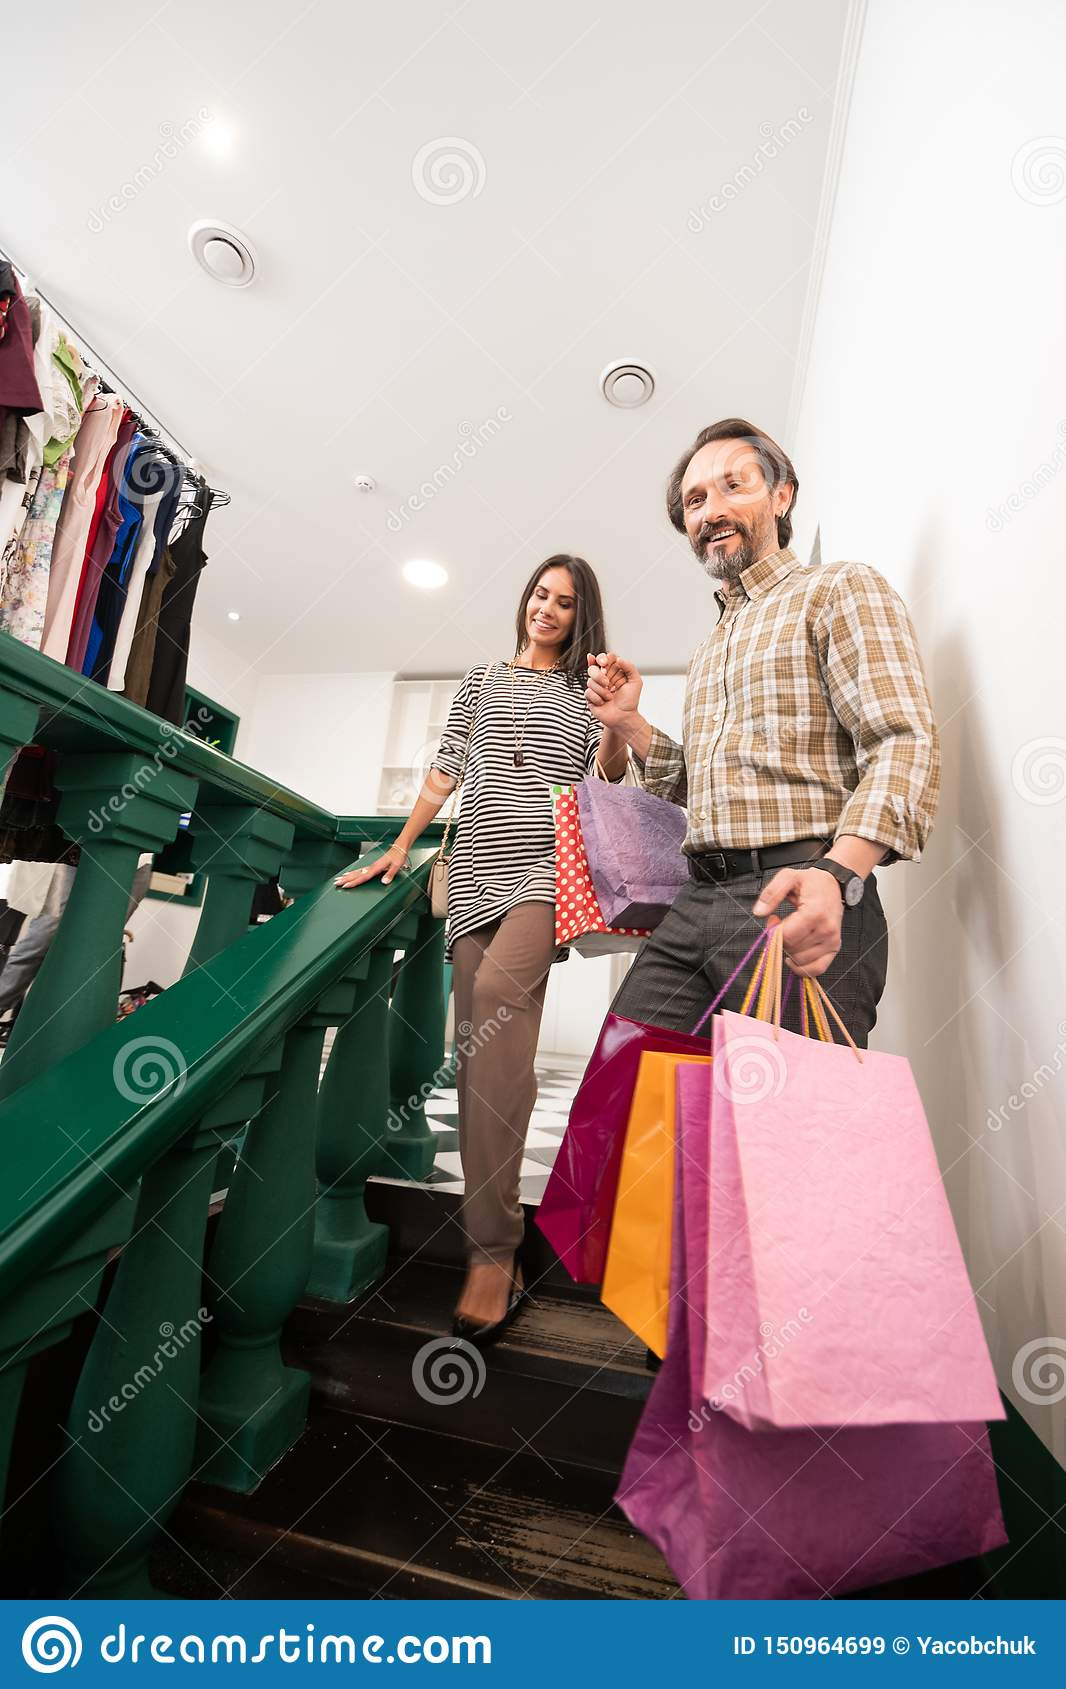 Attractive man assisting nice-looking lady with shopping bags